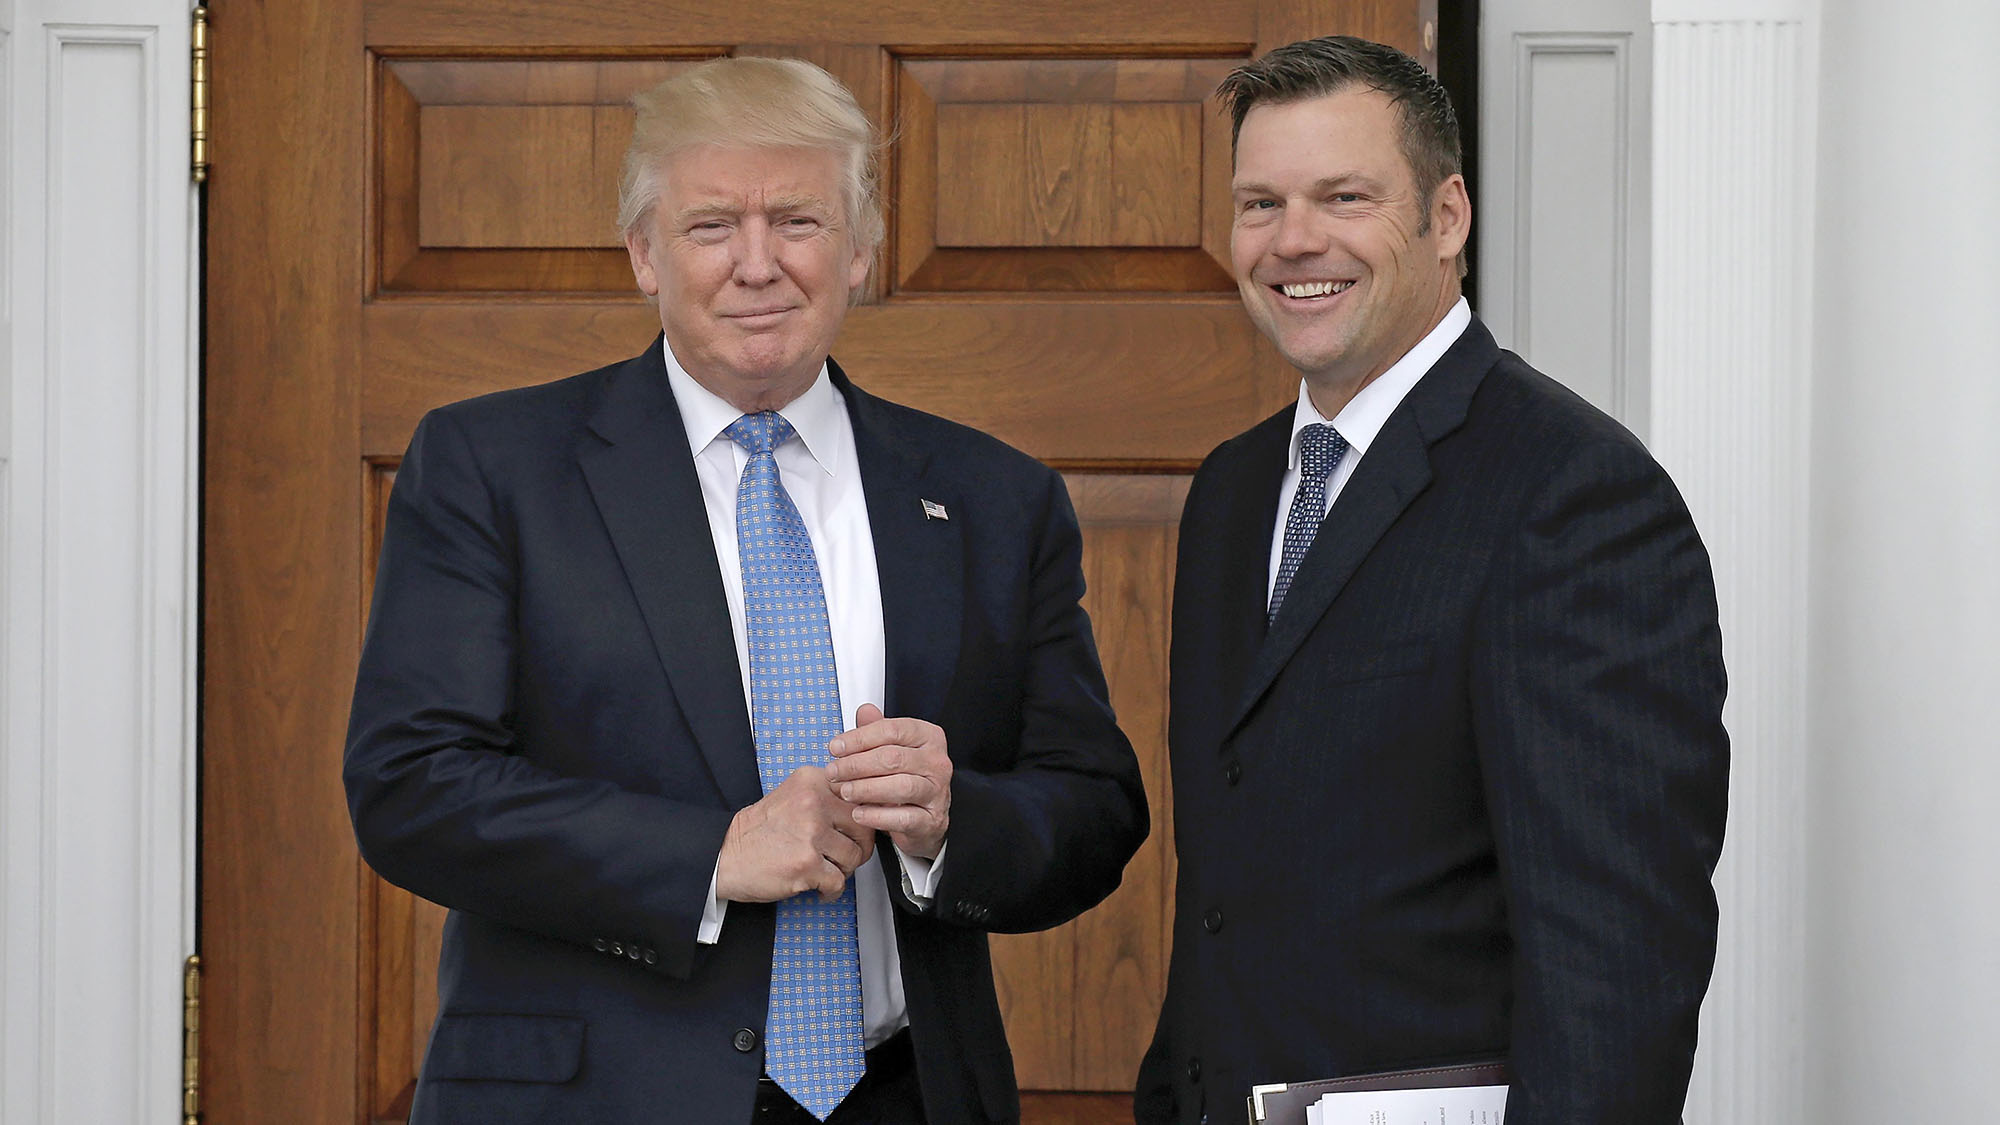 Trump's voter fraud commission vice chair floats conspiratorial election claim on MSNBC